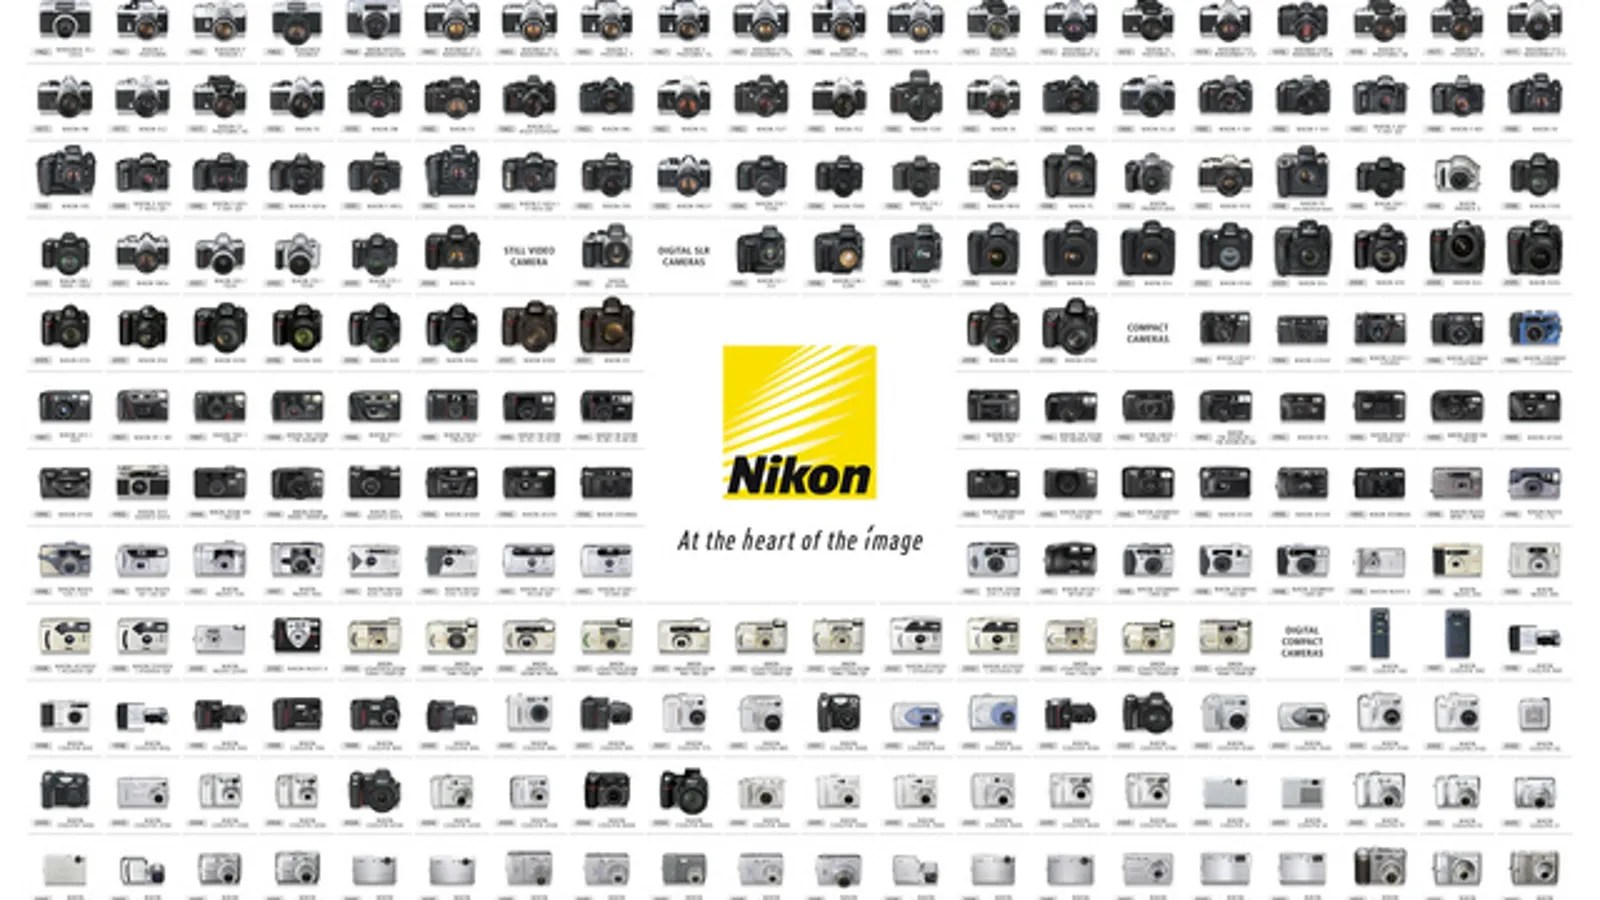 Holy Crap, Every Nikon Camera Ever Made In a Single Image